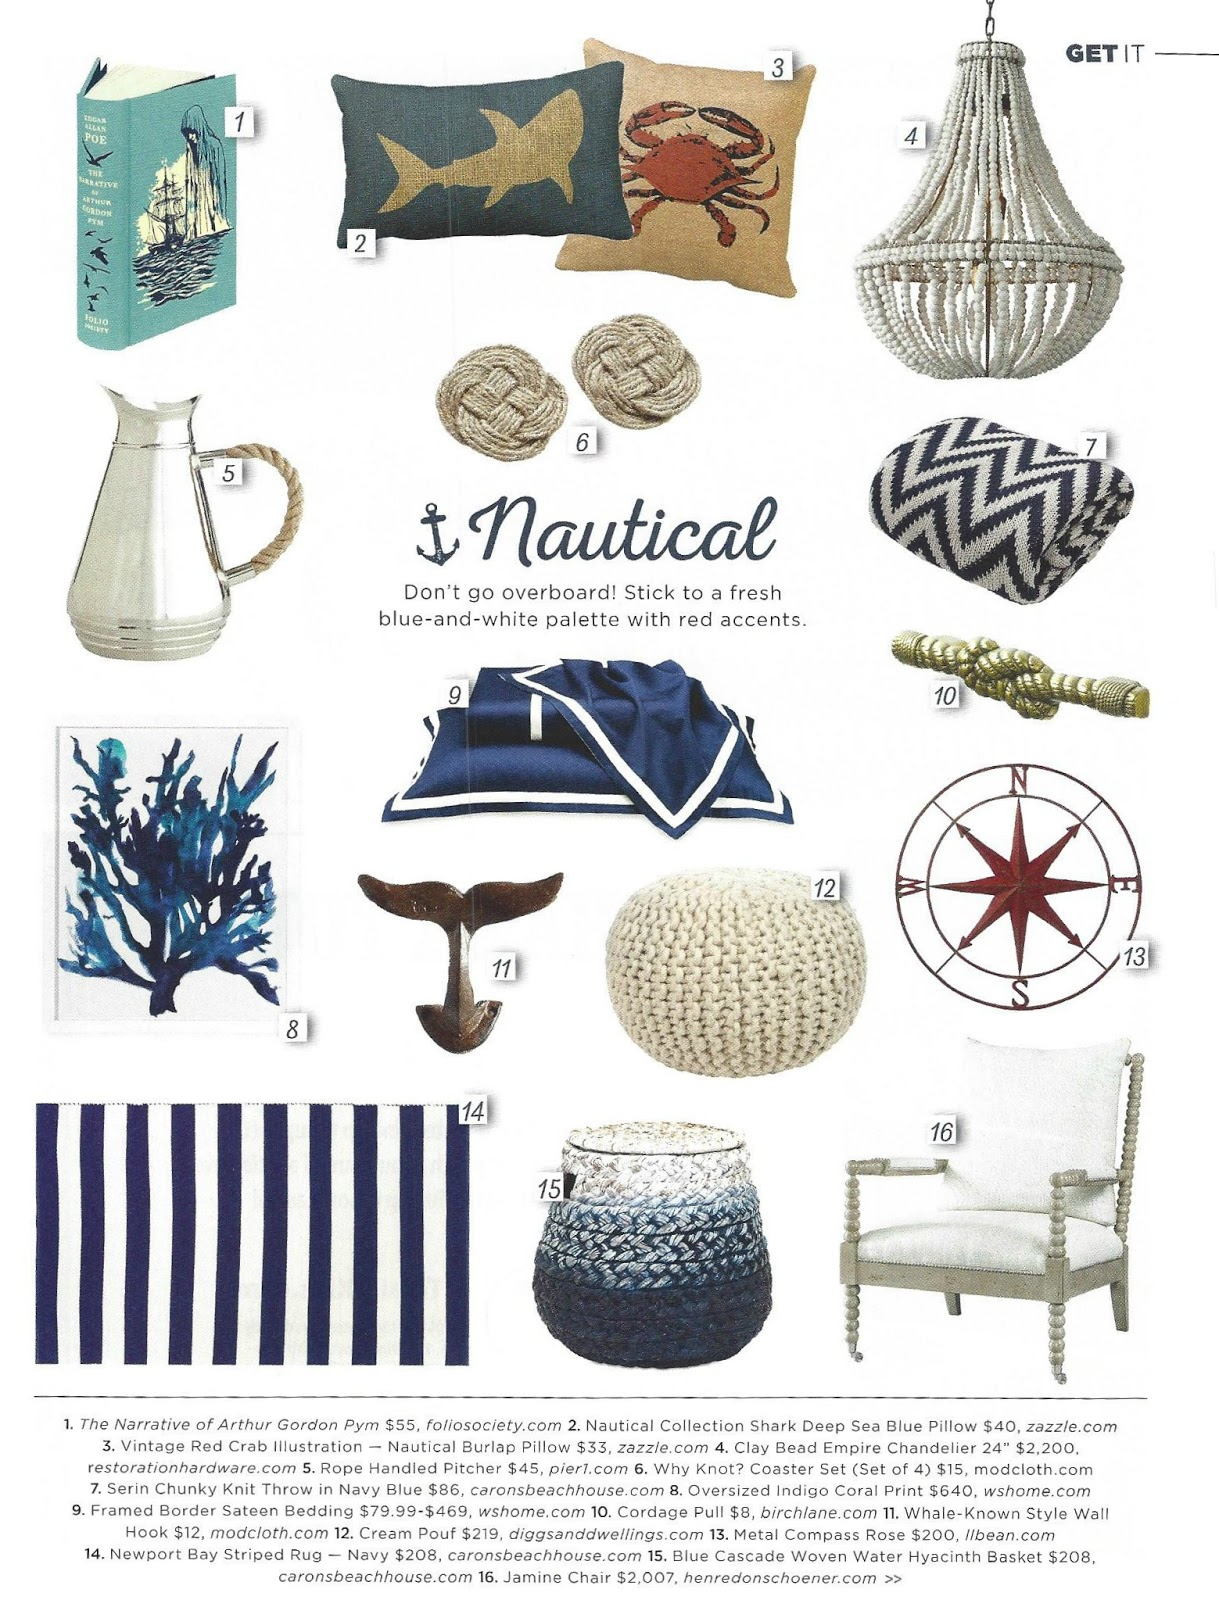 More Blue And White Nautical Decorating Ideas!